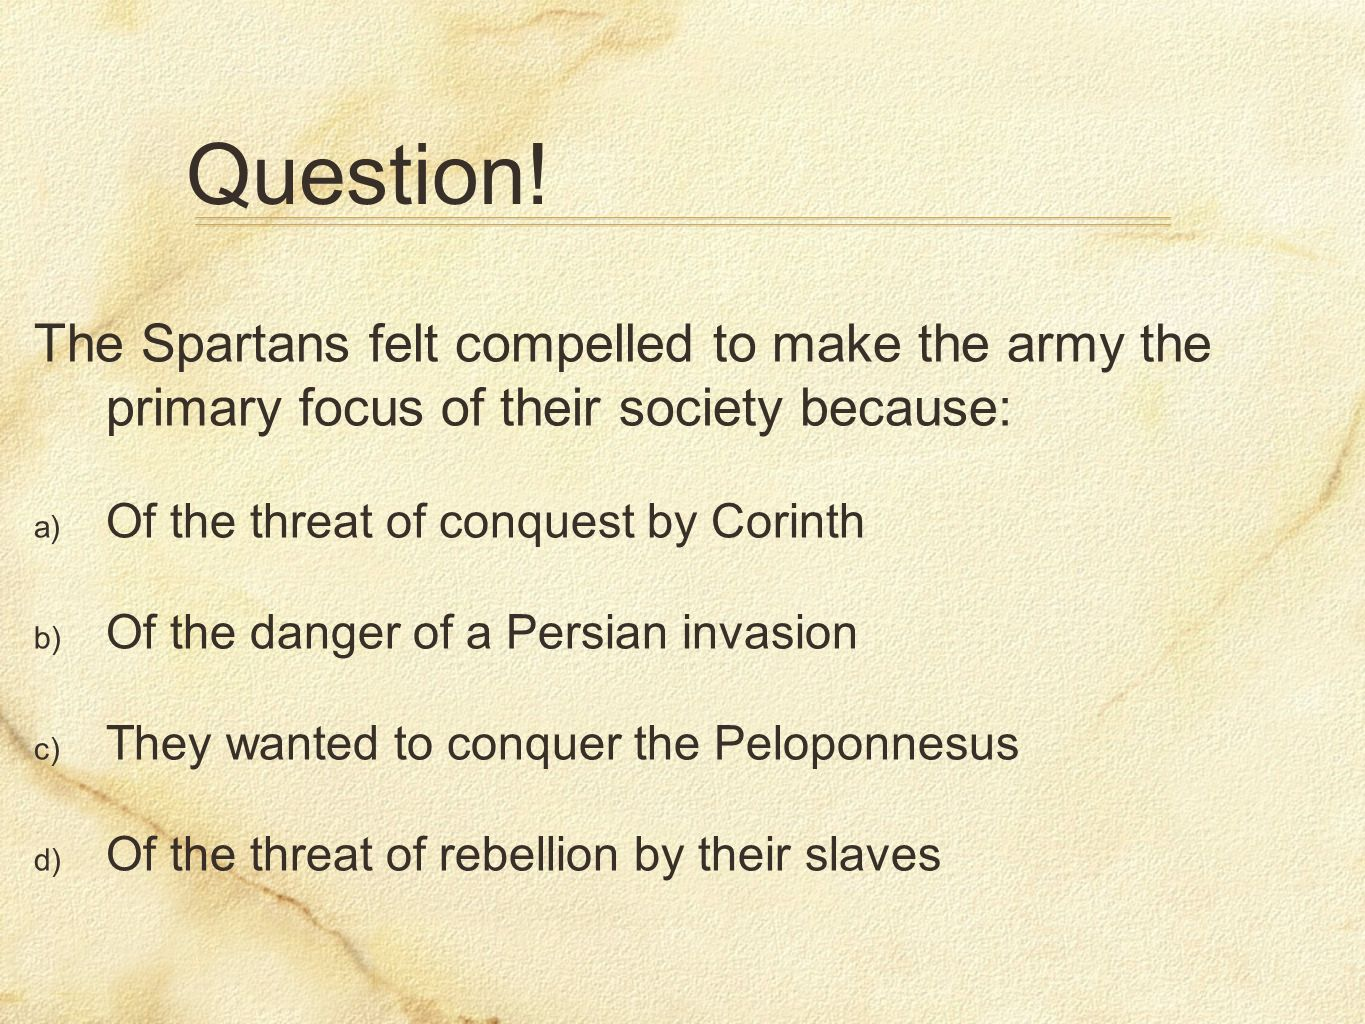 Question! The Spartans felt compelled to make the army the primary focus of their society because: